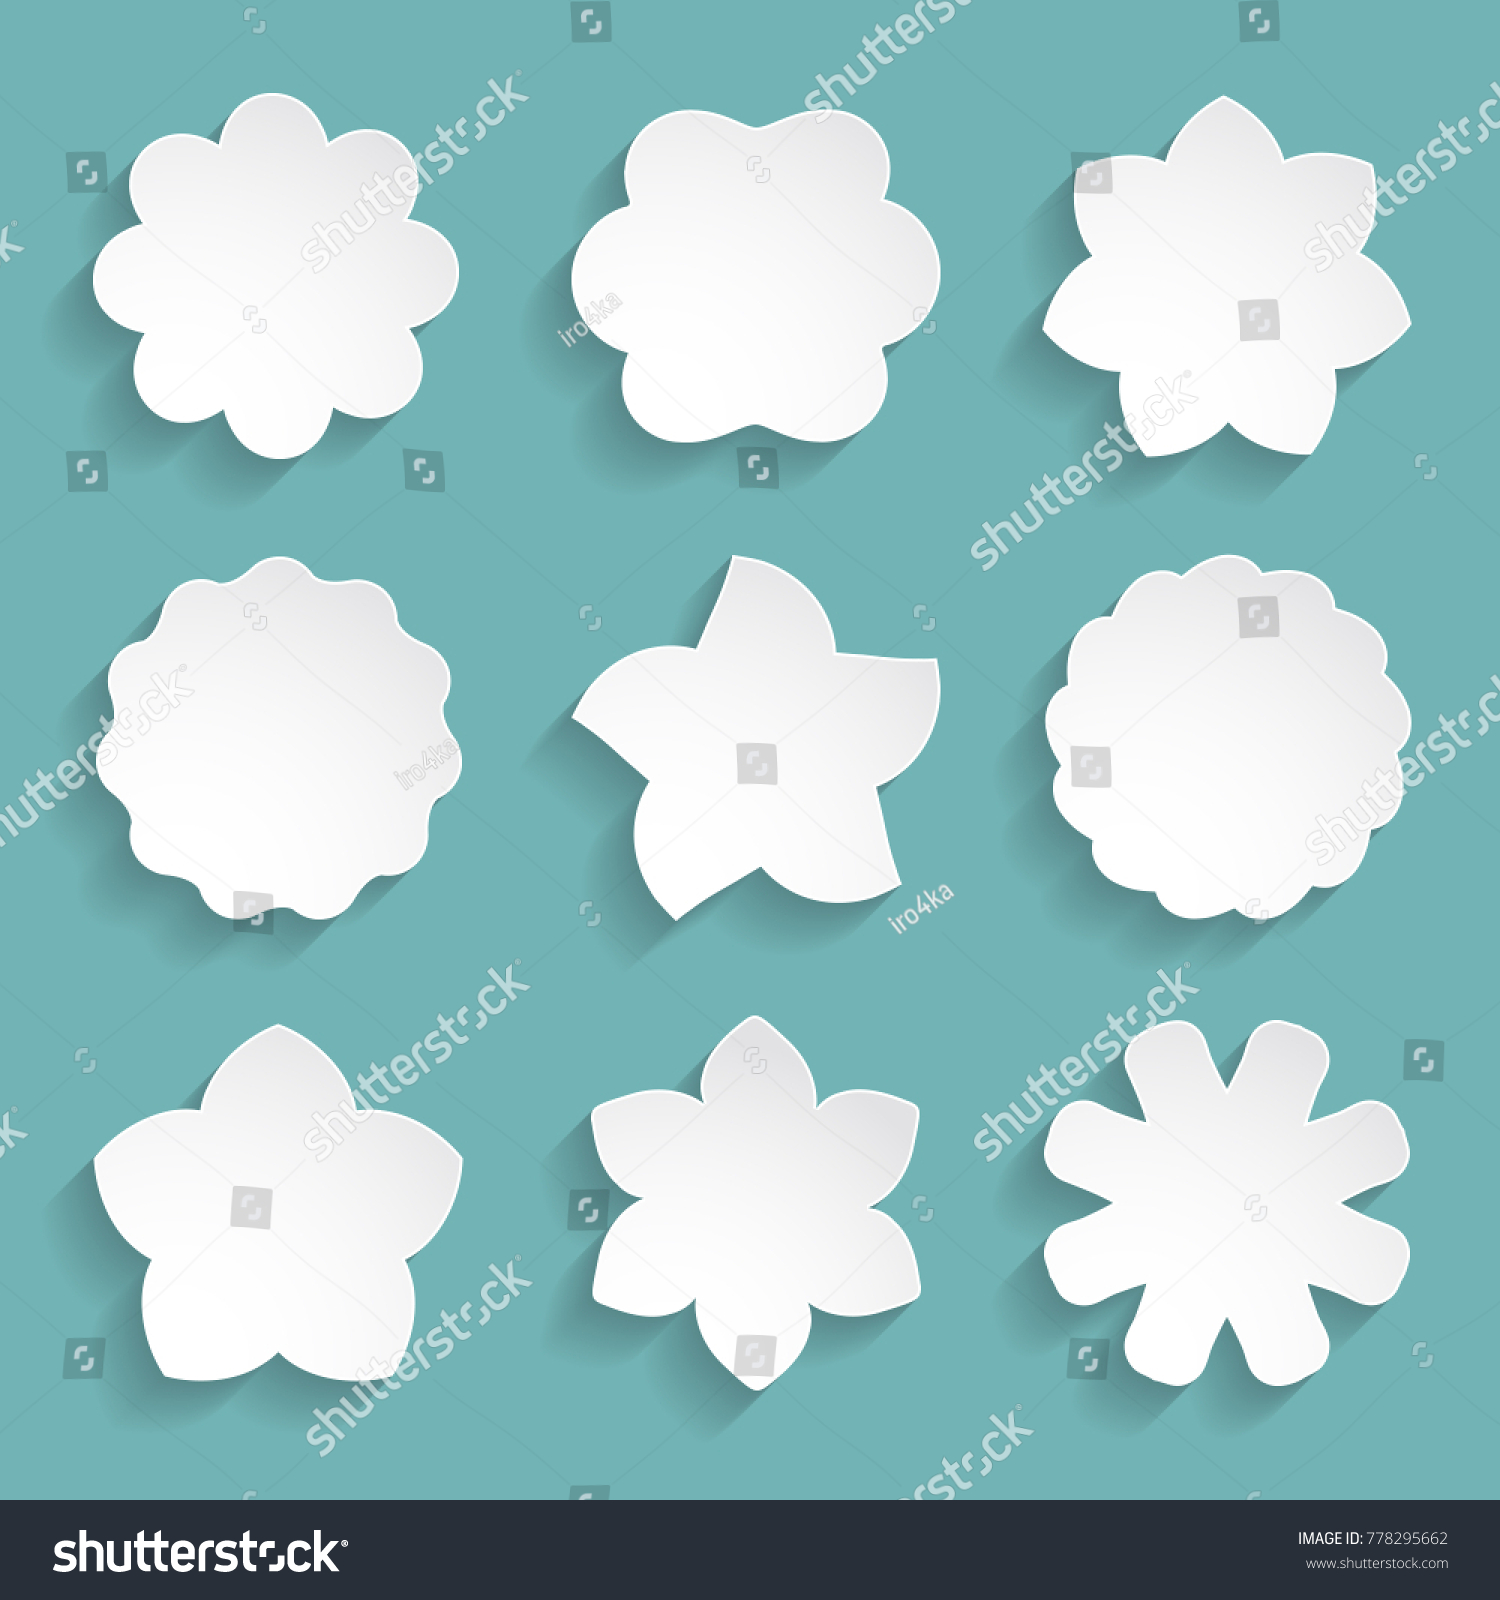 Set 9 Paper Flower Shapes Stock Vector Royalty Free 778295662